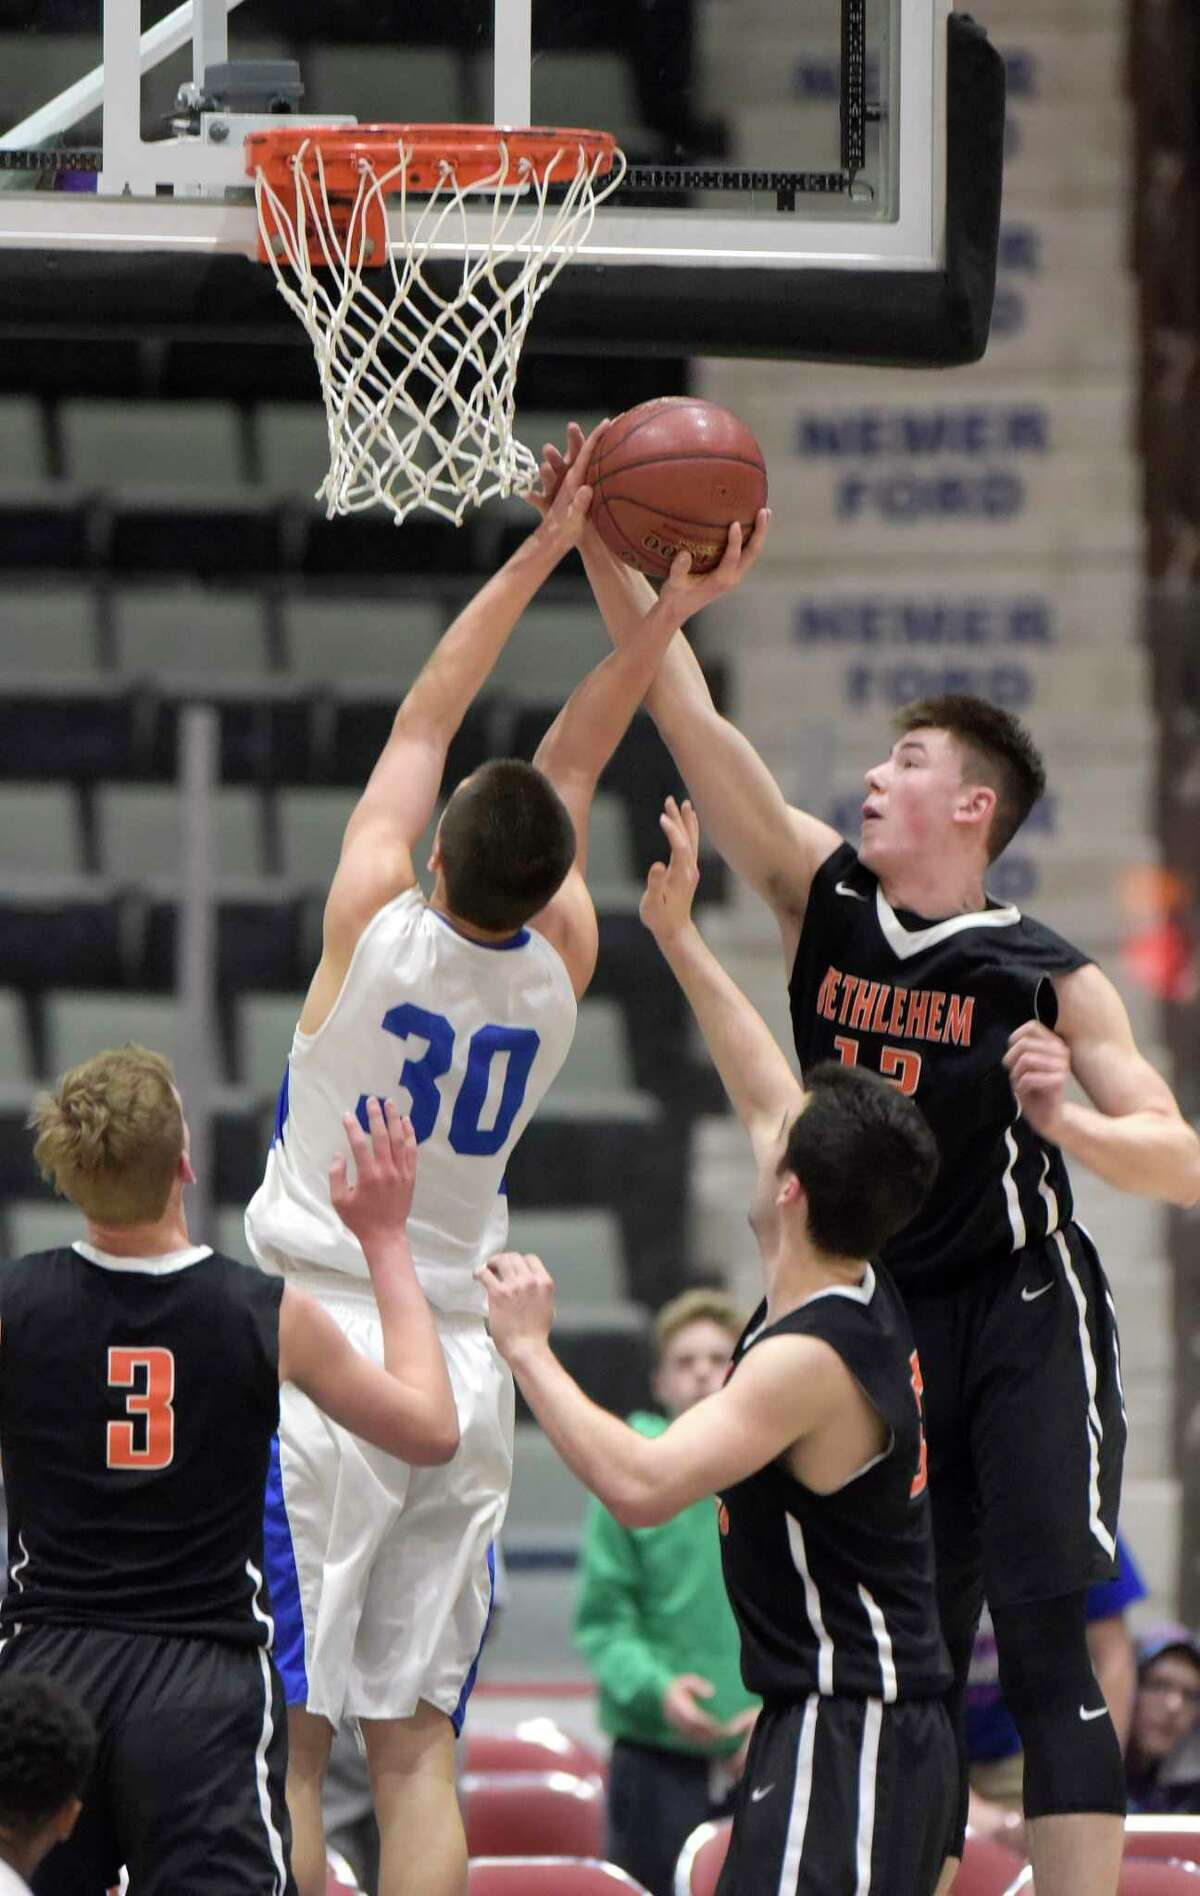 Tim Carroll of La Salle Institute puts up a shot as Micheal Ortale of Bethlehem tries to block it during their Class AA semifinal game at the Glens Falls Civic Center on Tuesday, Feb. 28, 2017, in Glens Falls, N.Y. (Paul Buckowski / Times Union)